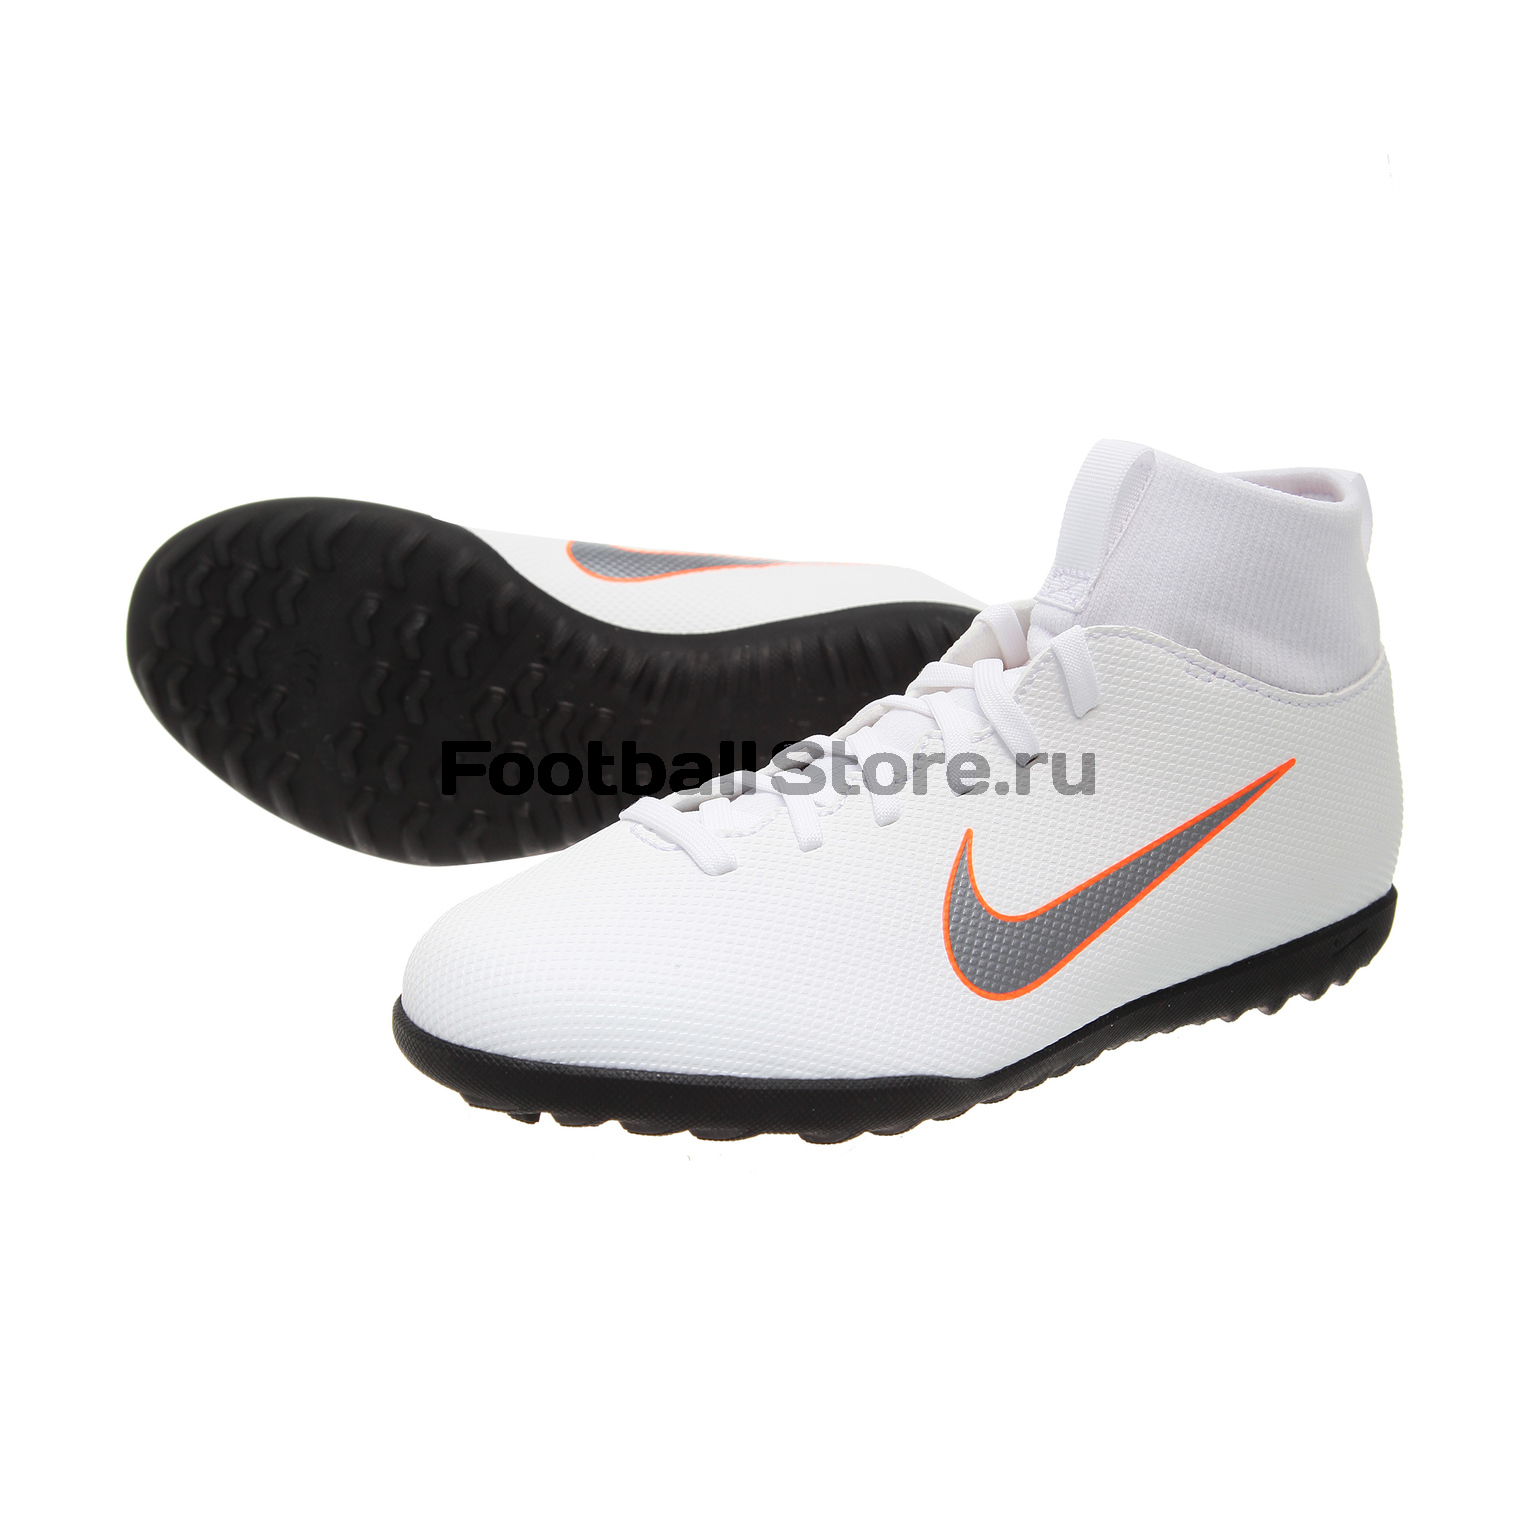 Шиповки Nike JR SuperflyX 6 Club TF AH7345-107 шиповки nike шиповки nike hypervenomx proximo ii df tf 852576 801